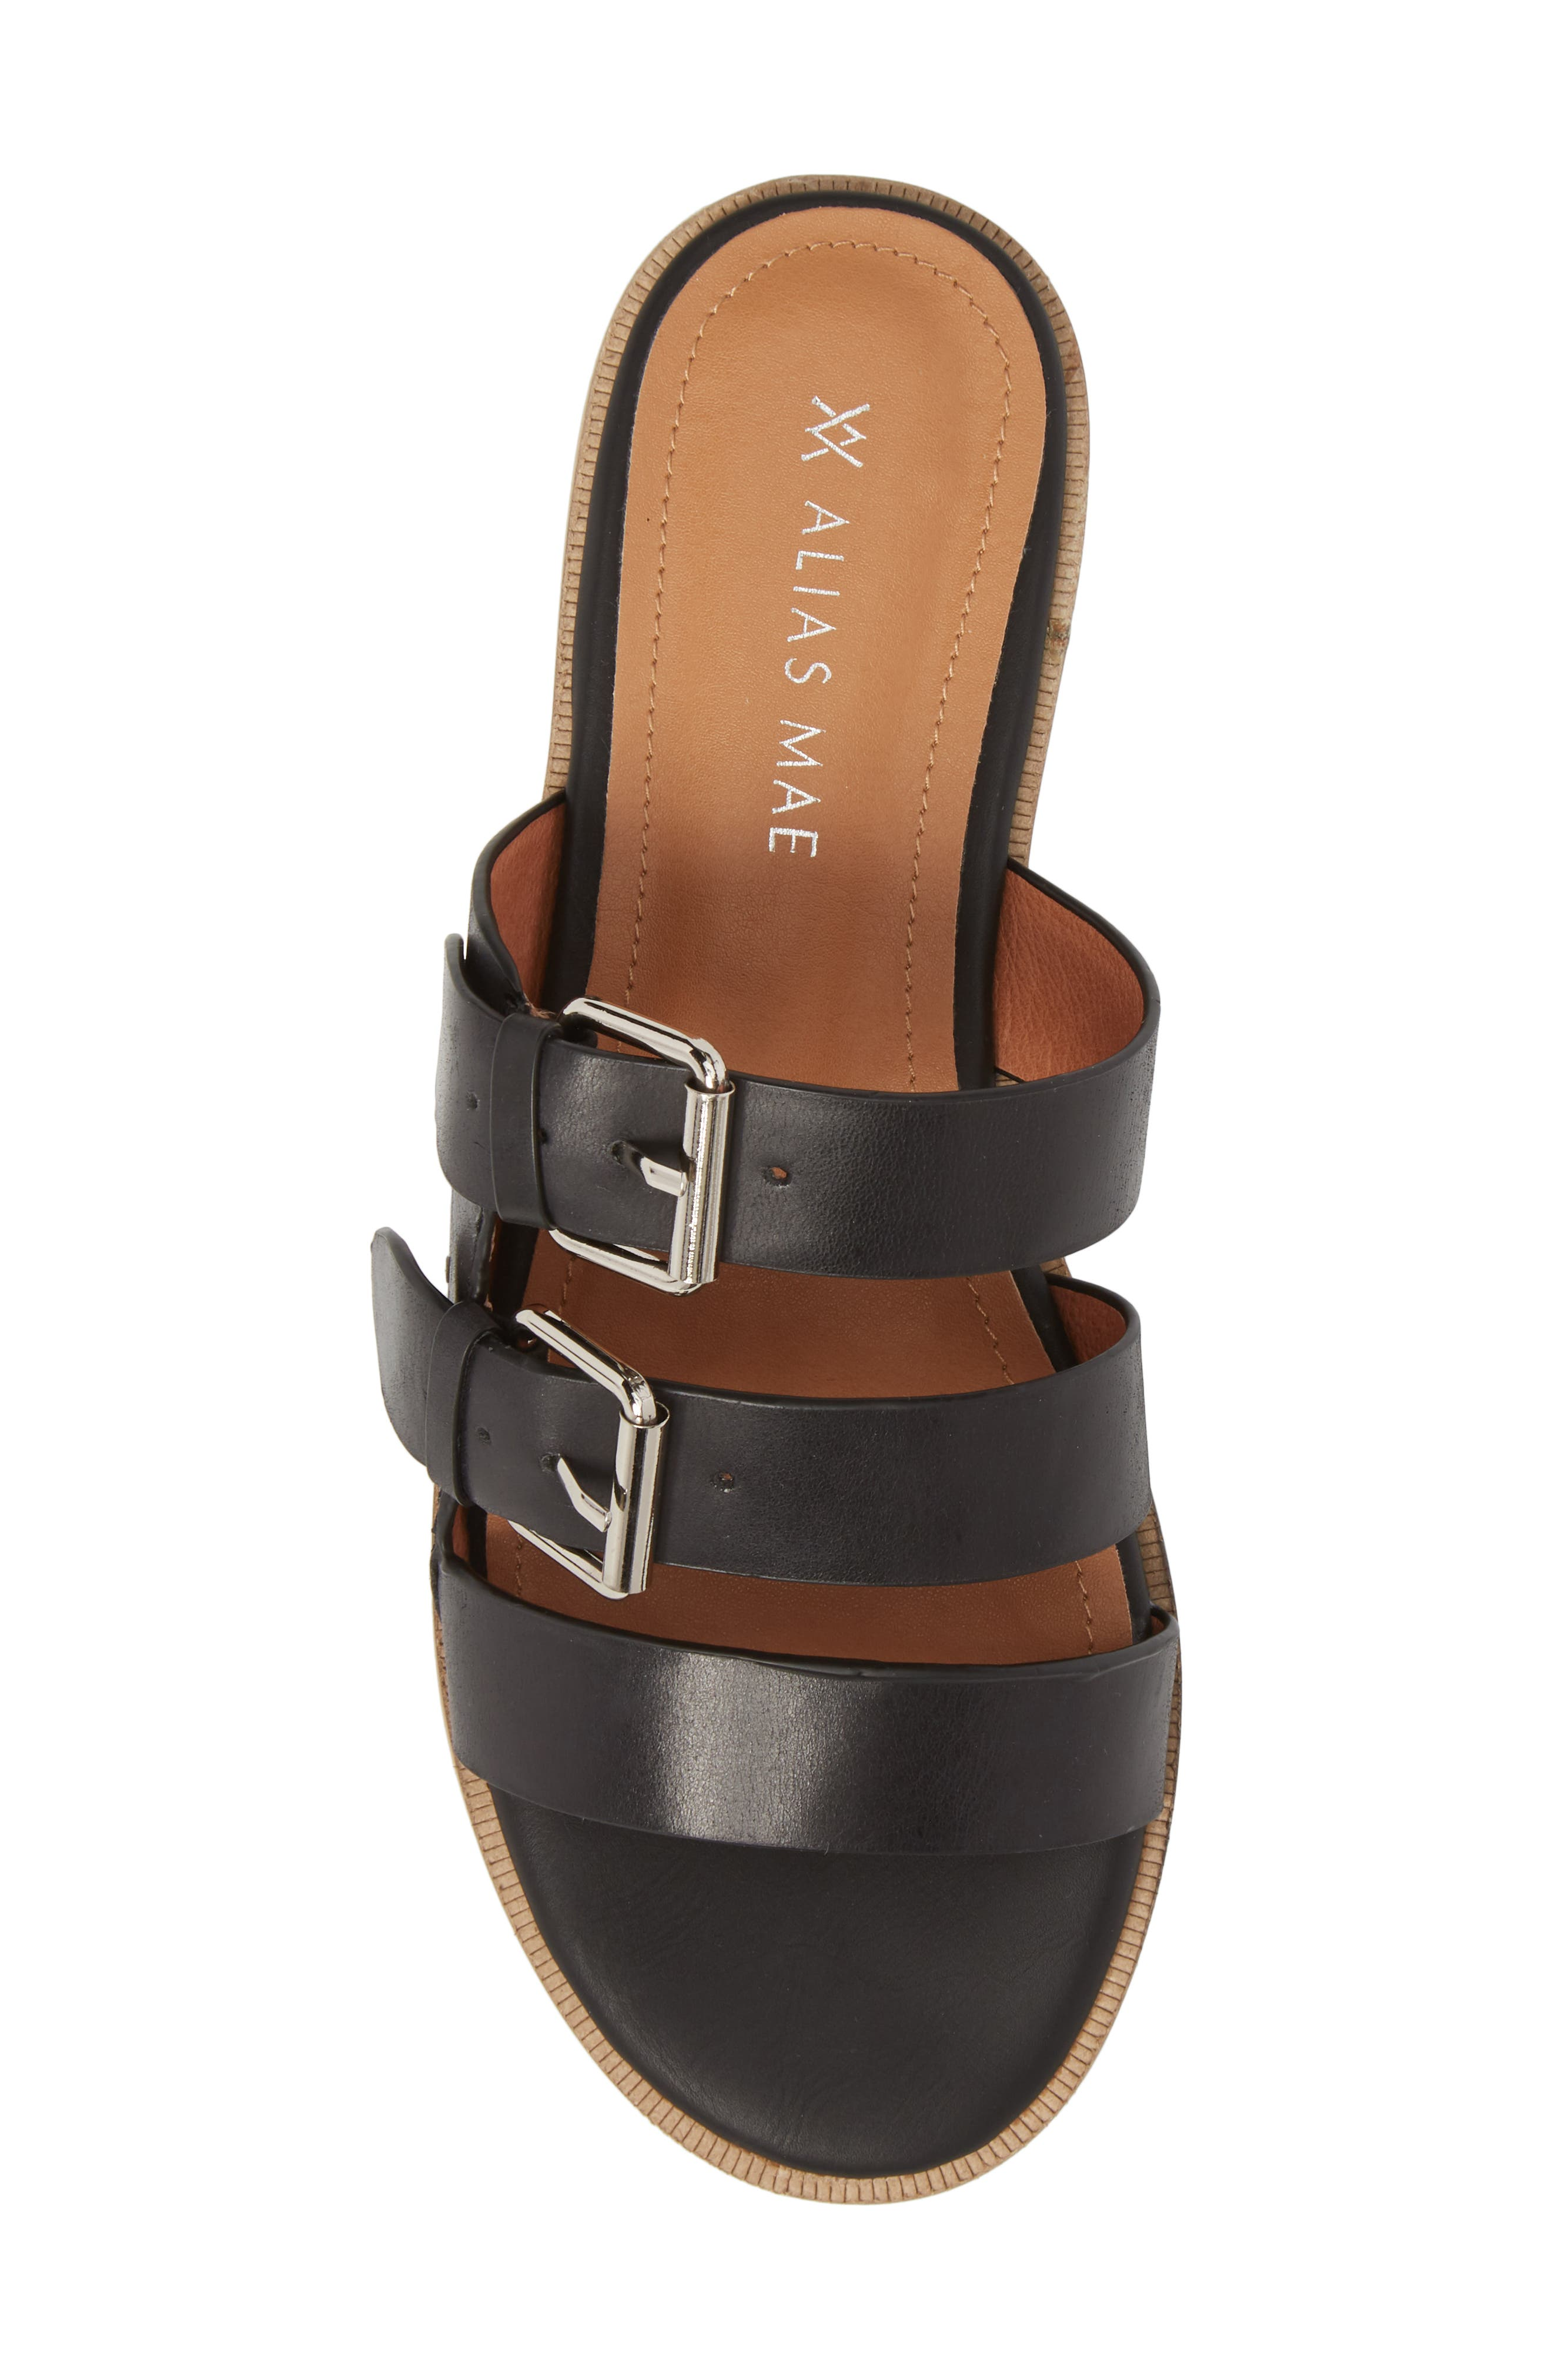 Theatre Buckled Slide Sandal,                             Alternate thumbnail 5, color,                             BLACK LEATHER